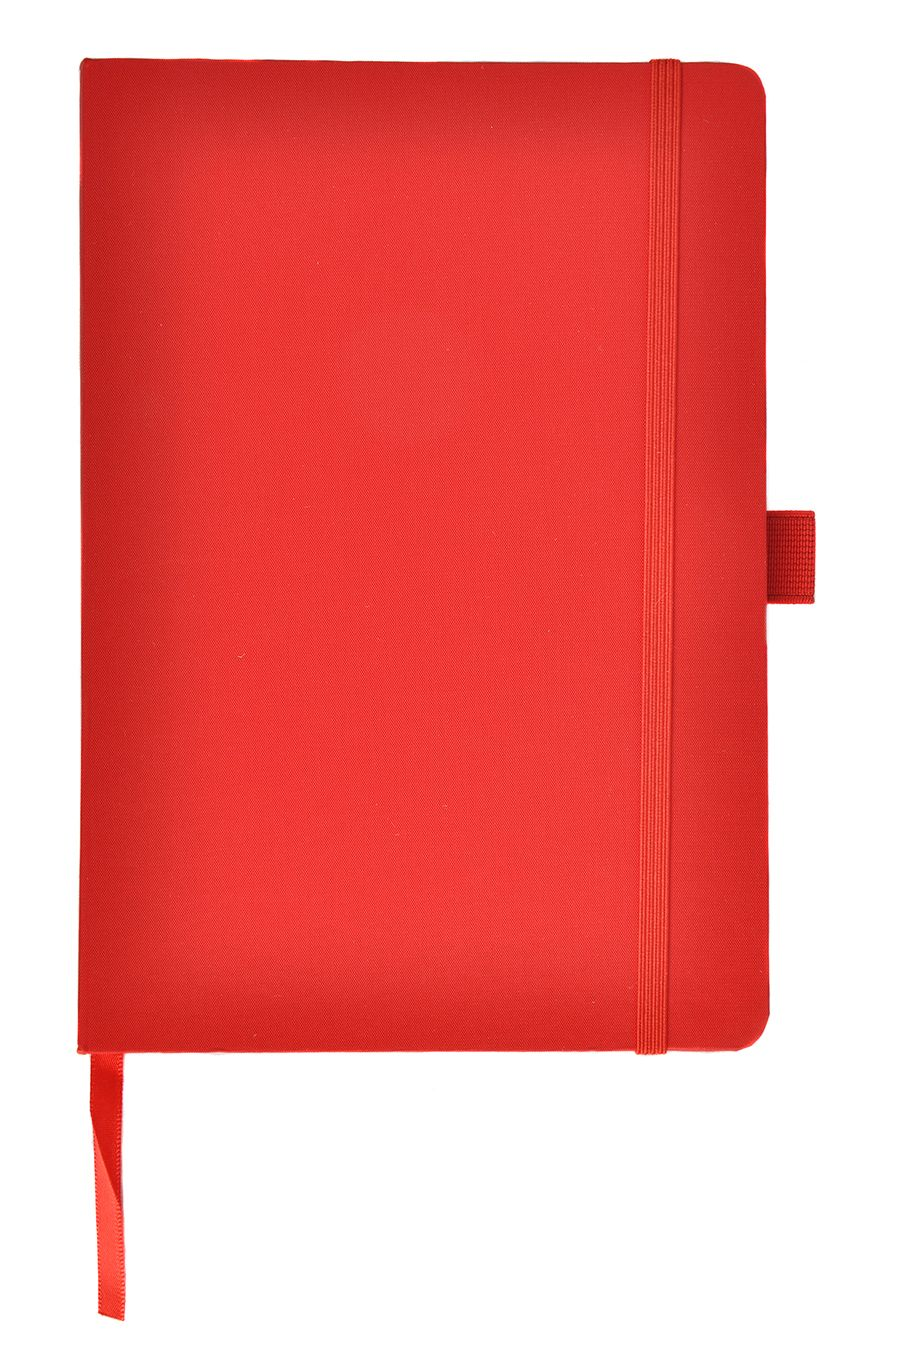 Bio-Degradable Notebook Cover Red